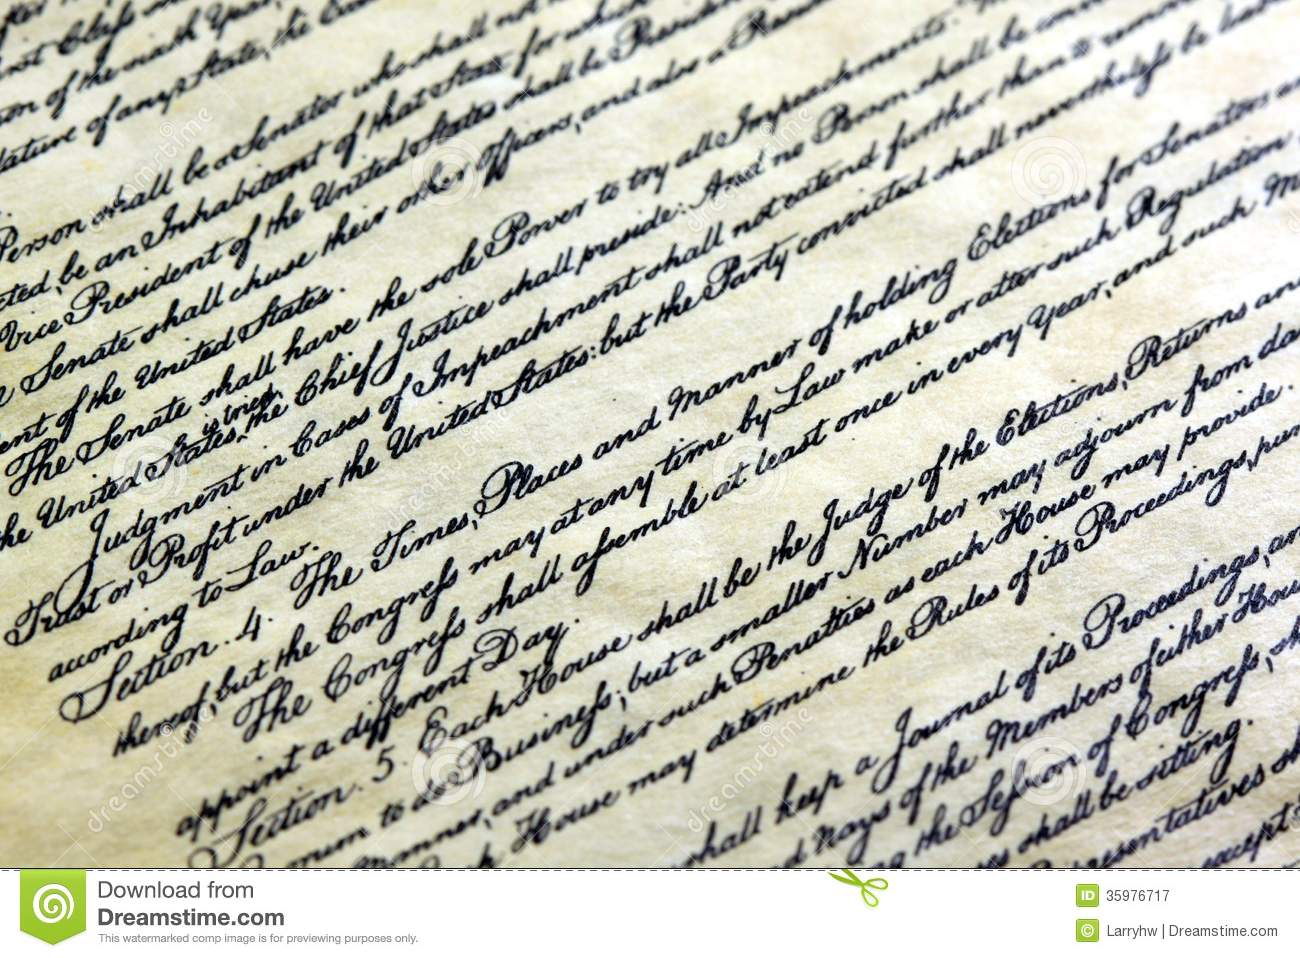 https://thumbs.dreamstime.com/z/old-vintage-letter-elegant-handwriting-paper-calligraphic-closeup-35976717.jpg